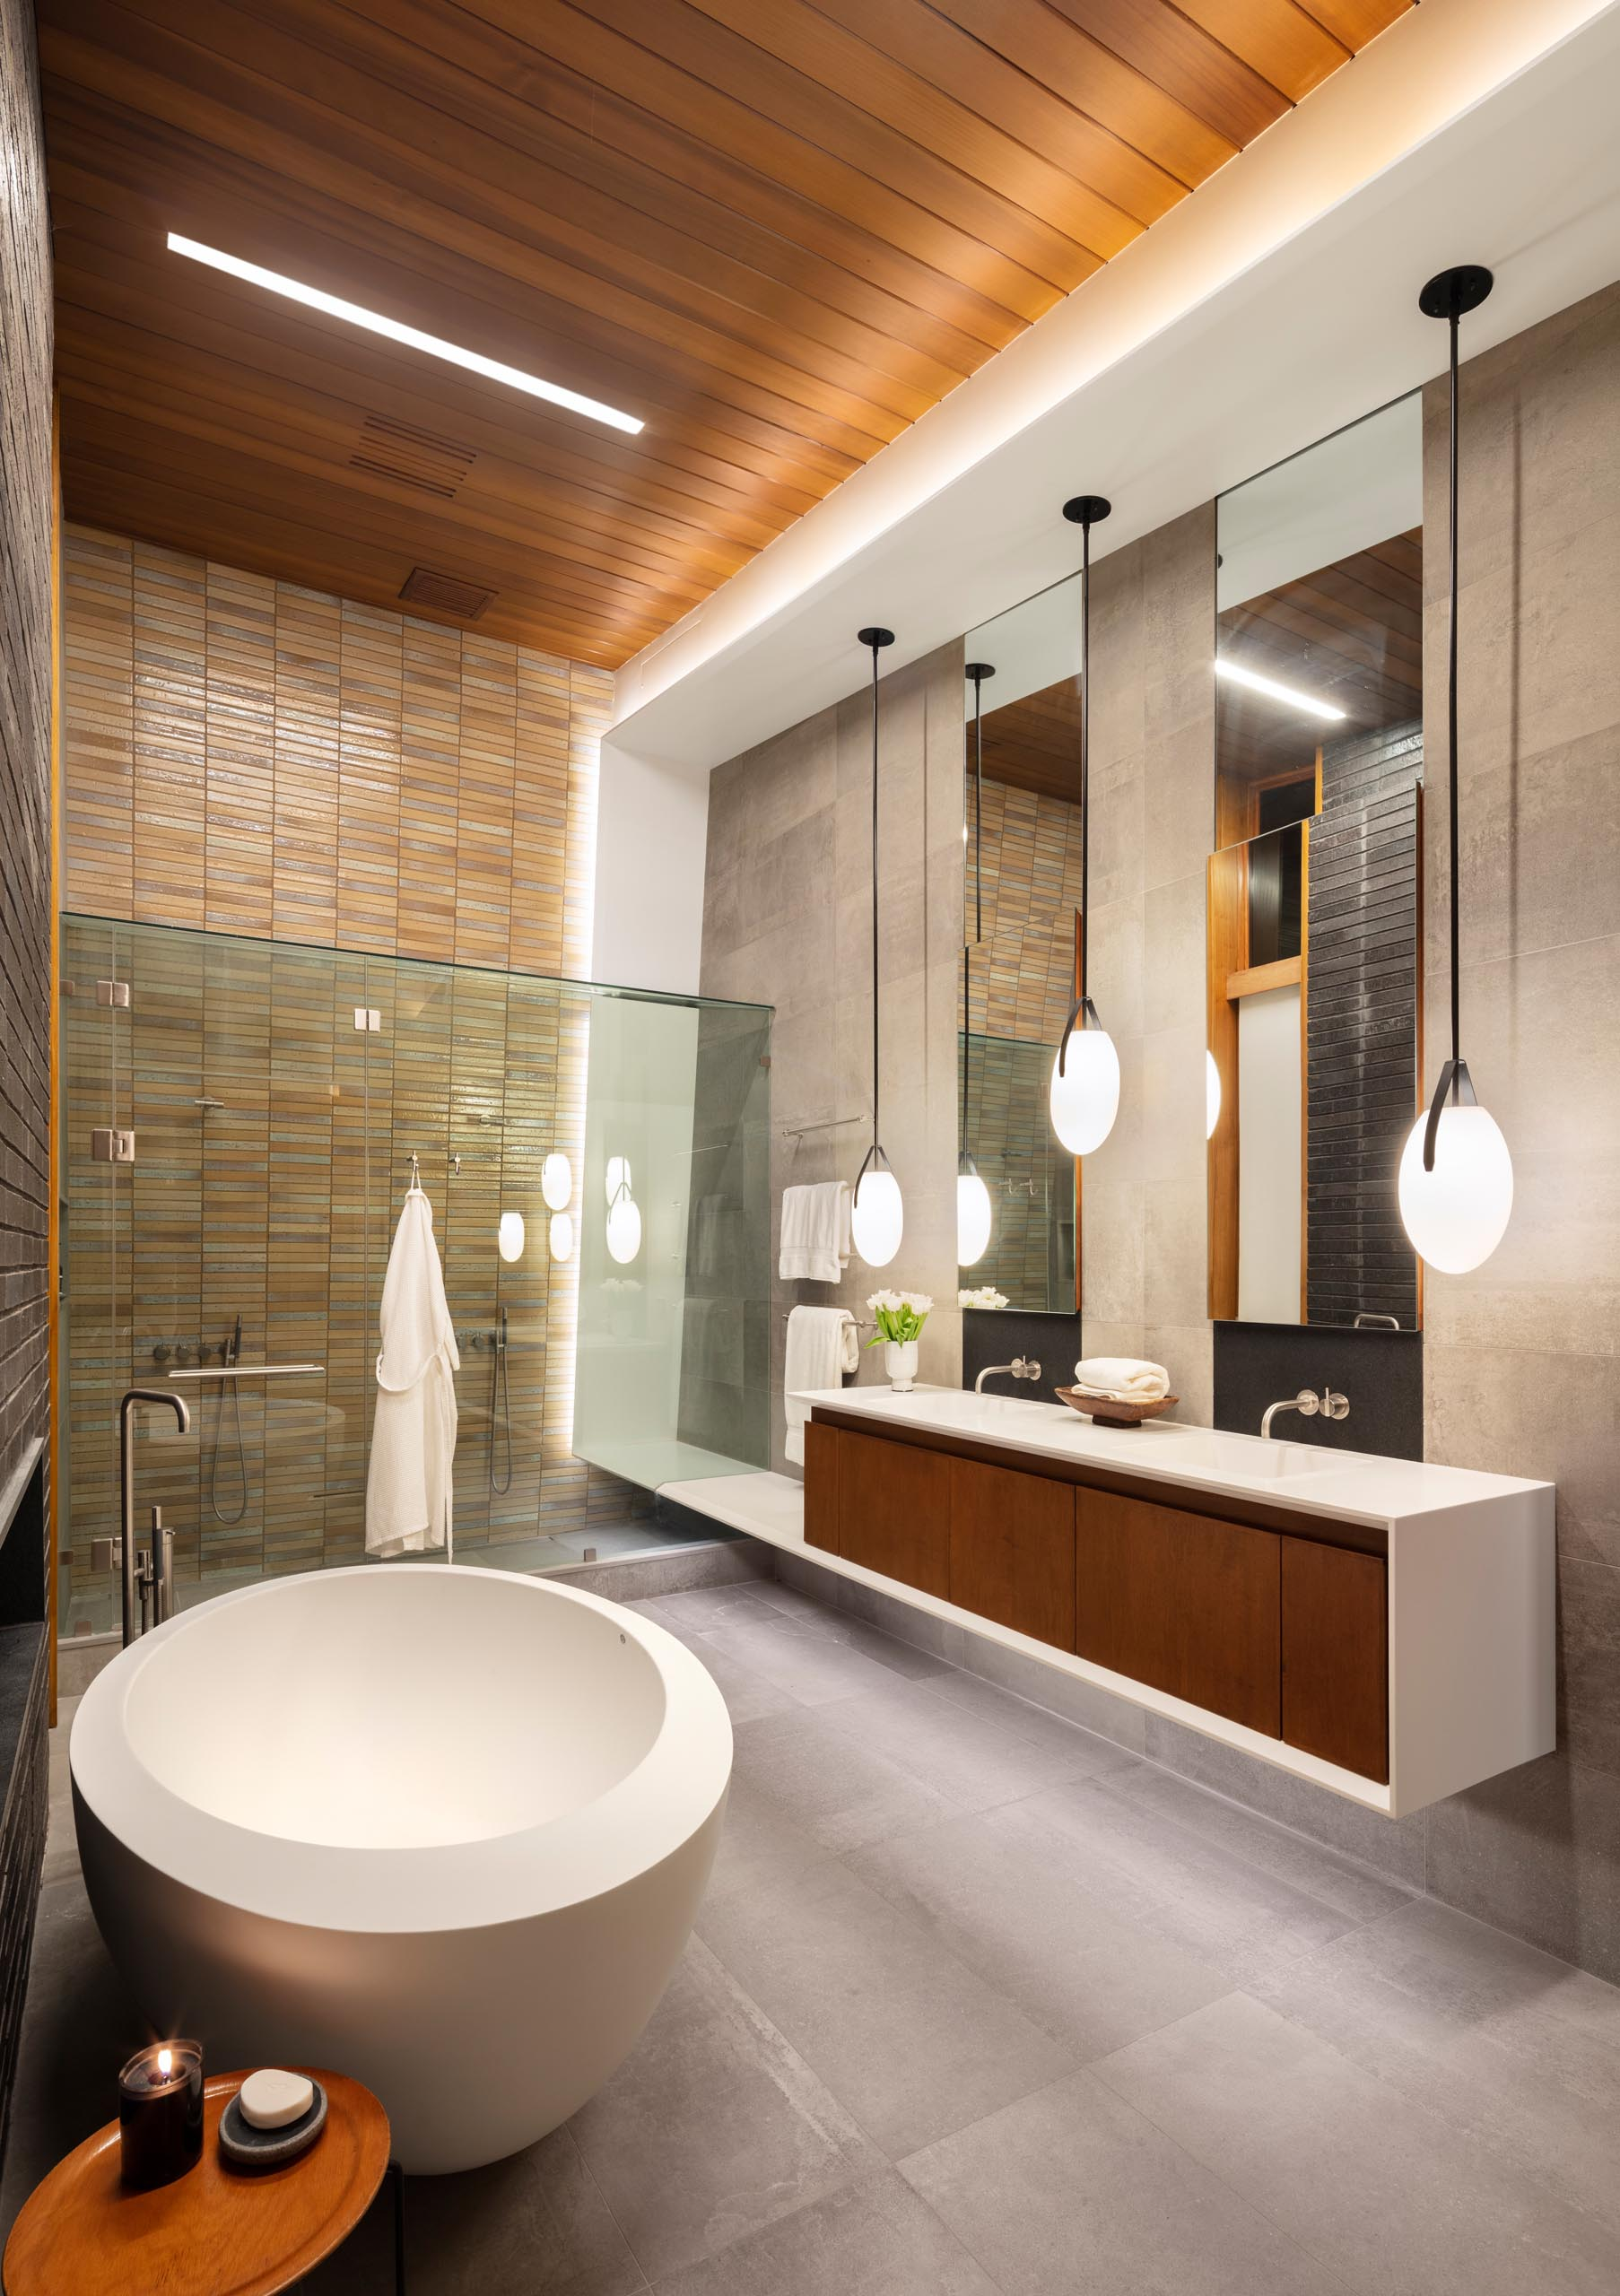 In this modern bathroom there's high ceilings, a freestanding bathtub, and a vanity with three pendant lights hanging above it.